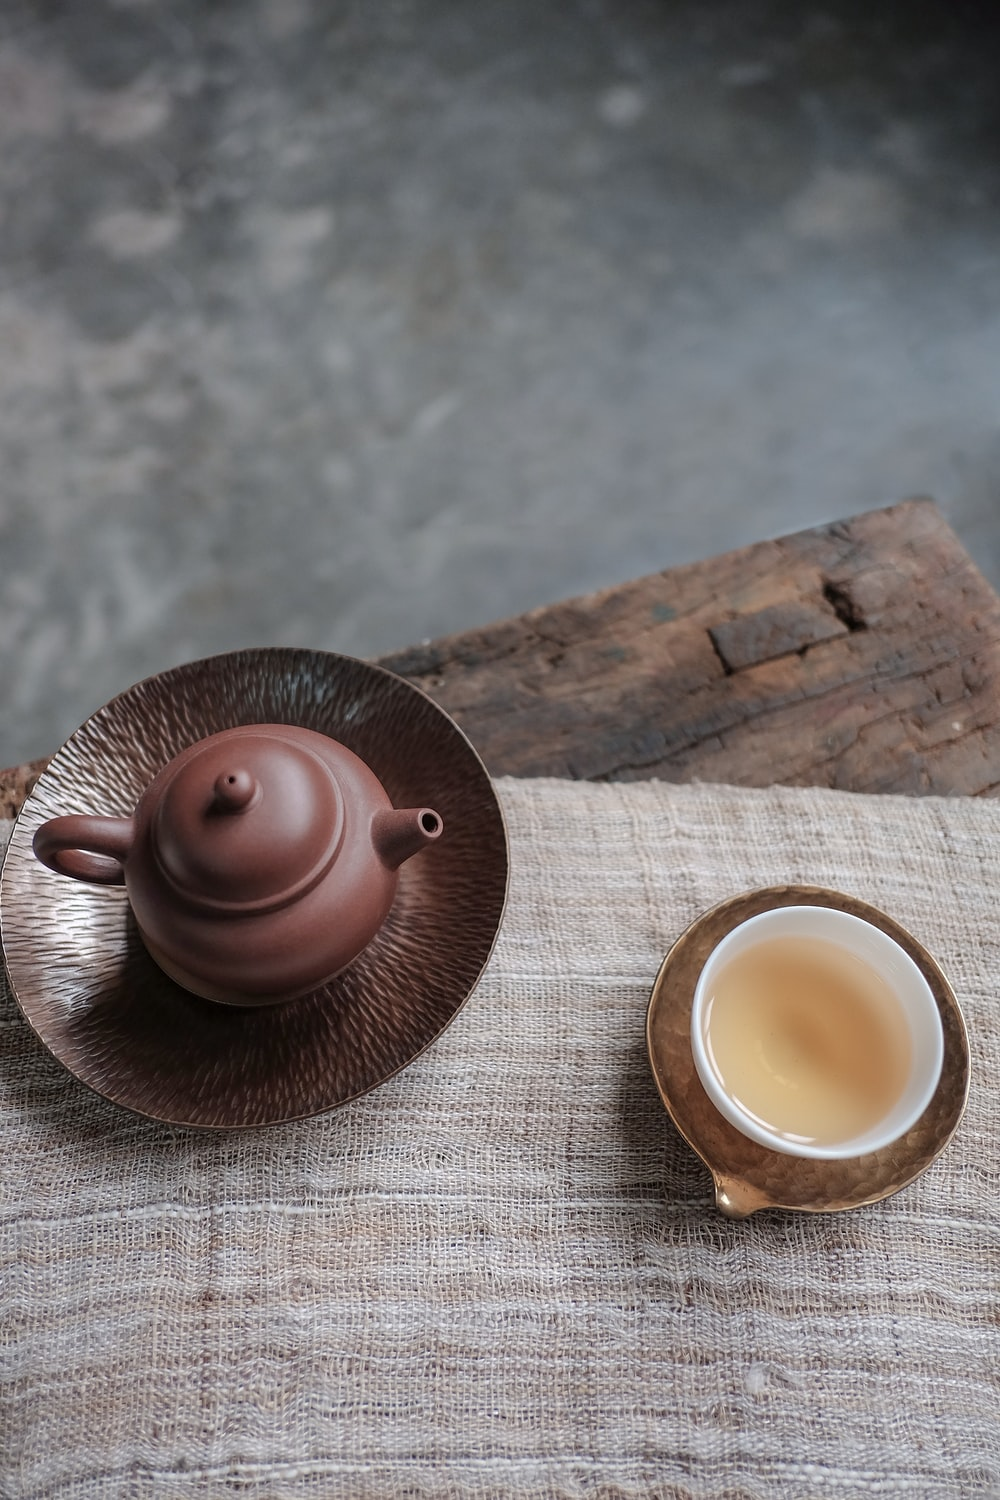 brown kettle and white cup on table